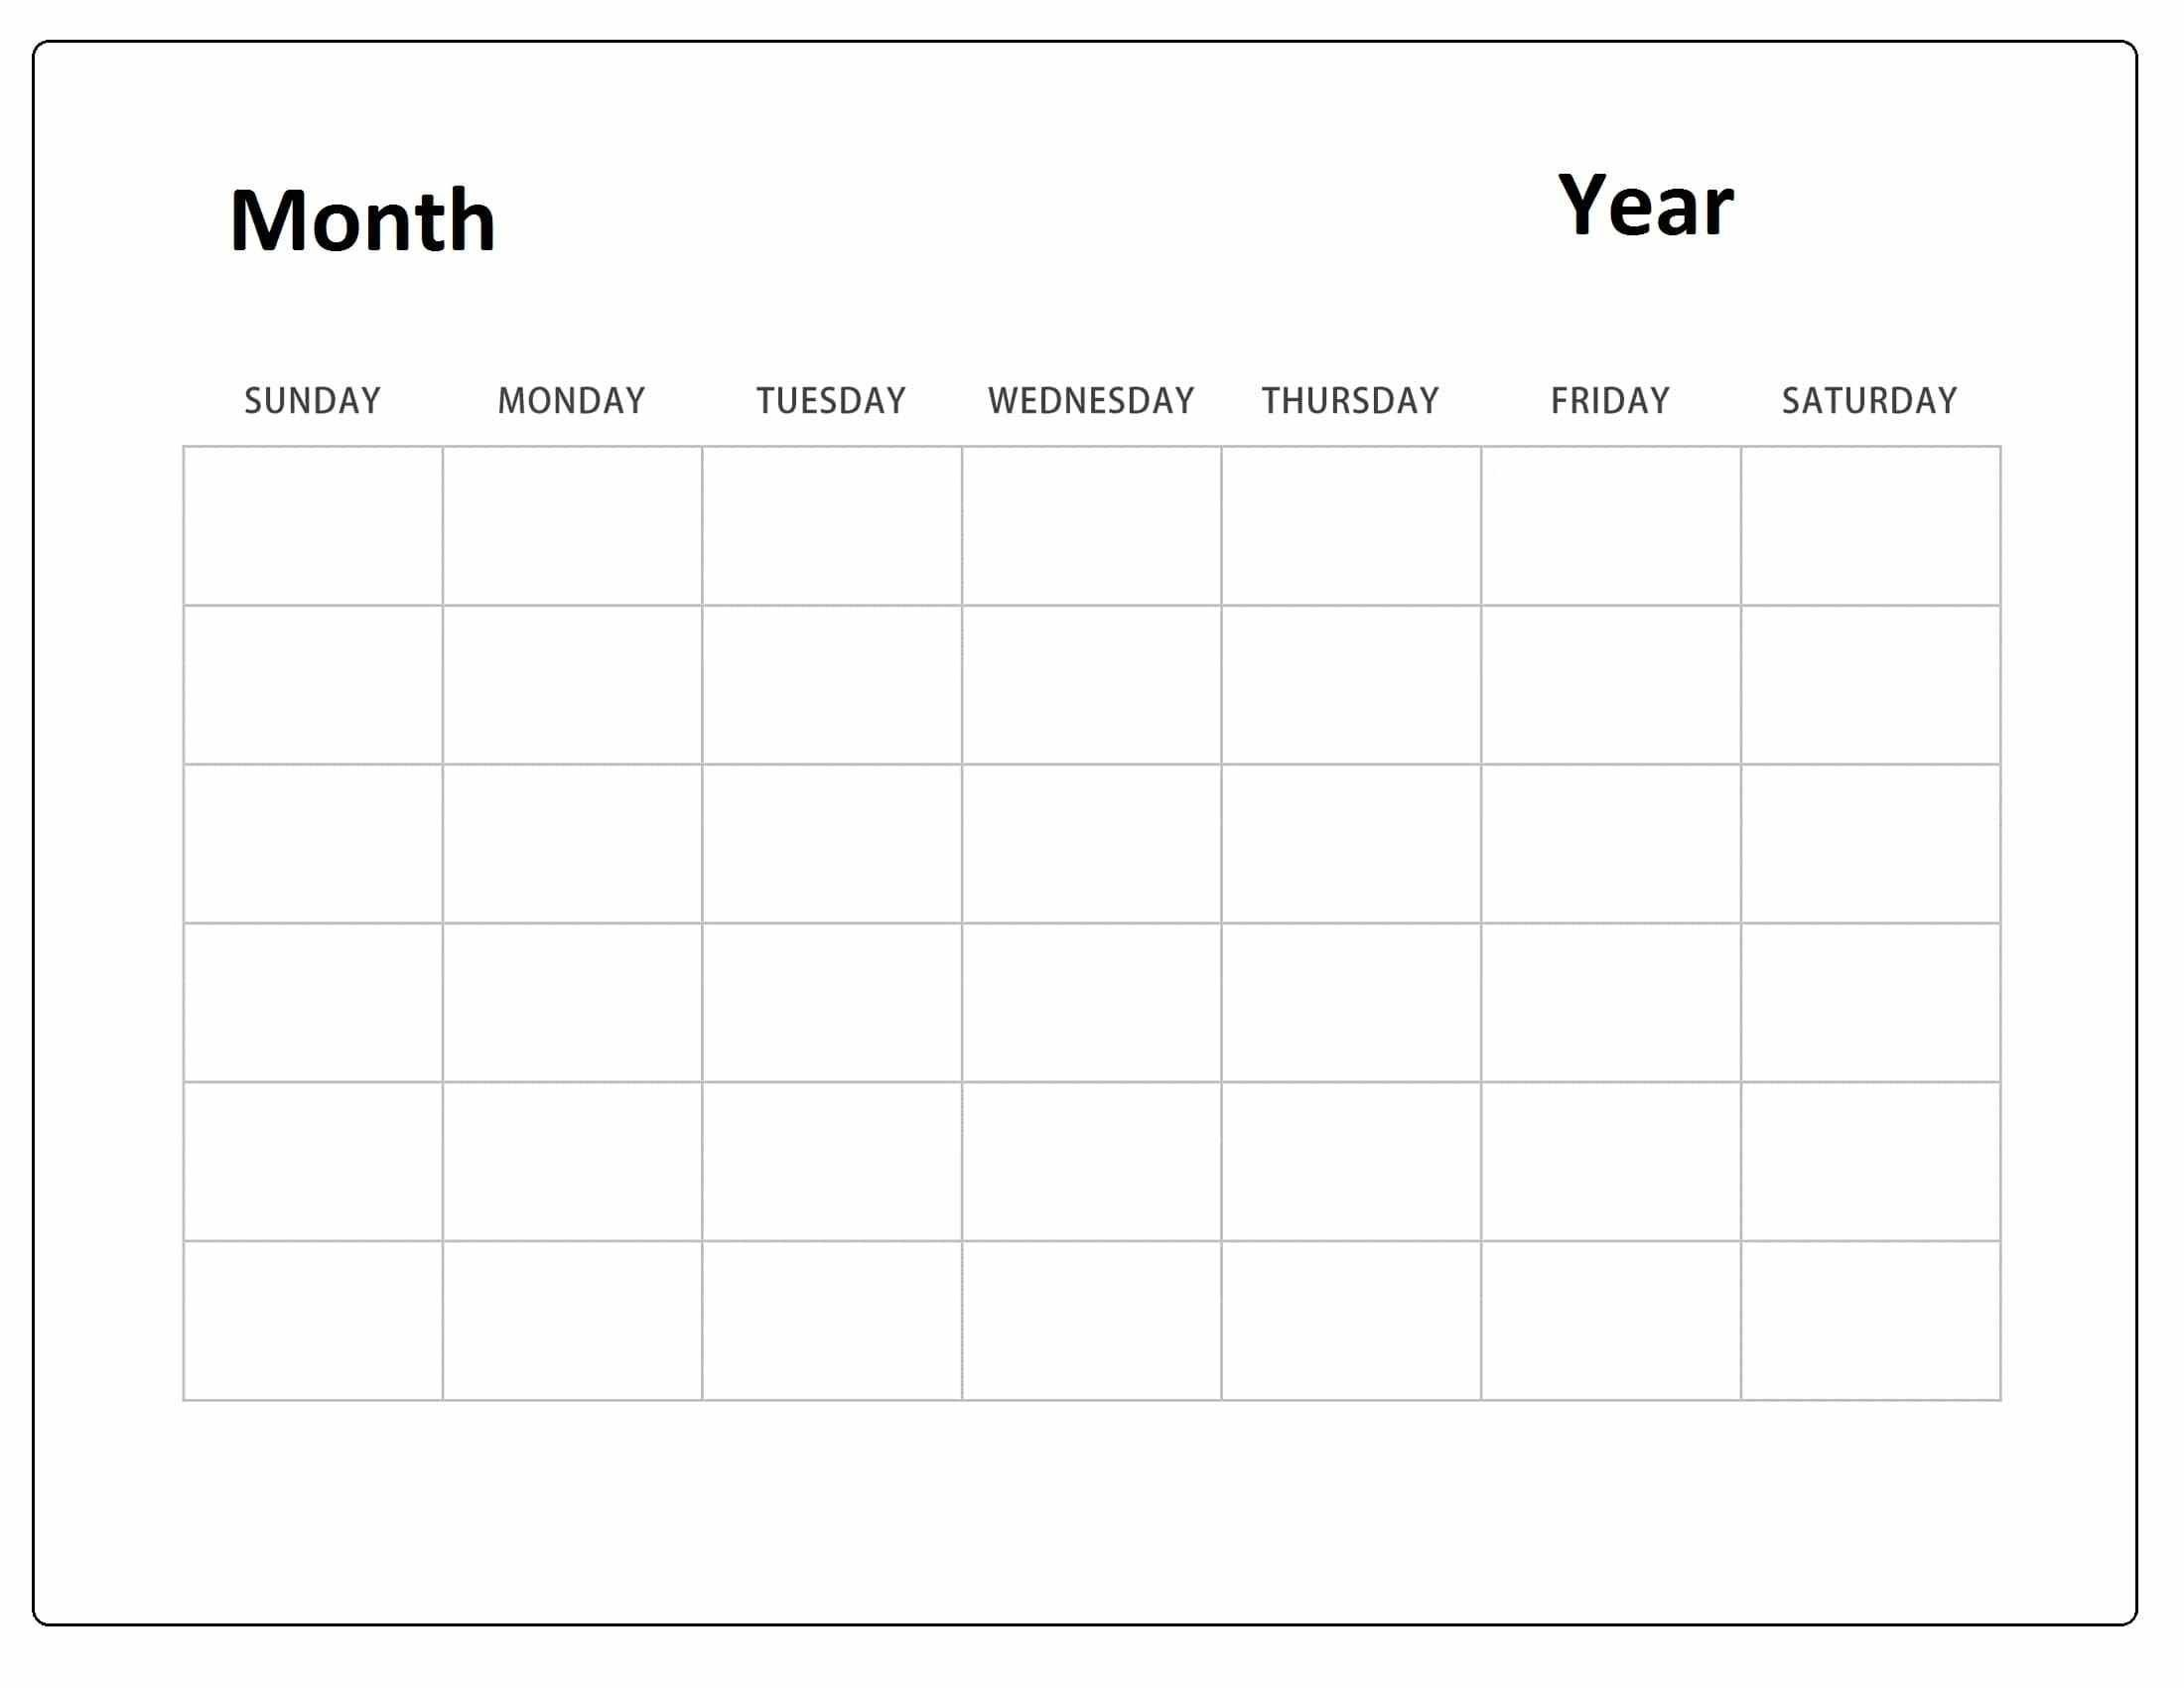 calendario 2019 en excel total filtered mas actual employee schedule template printable of calendario 2019 en excel total filtered